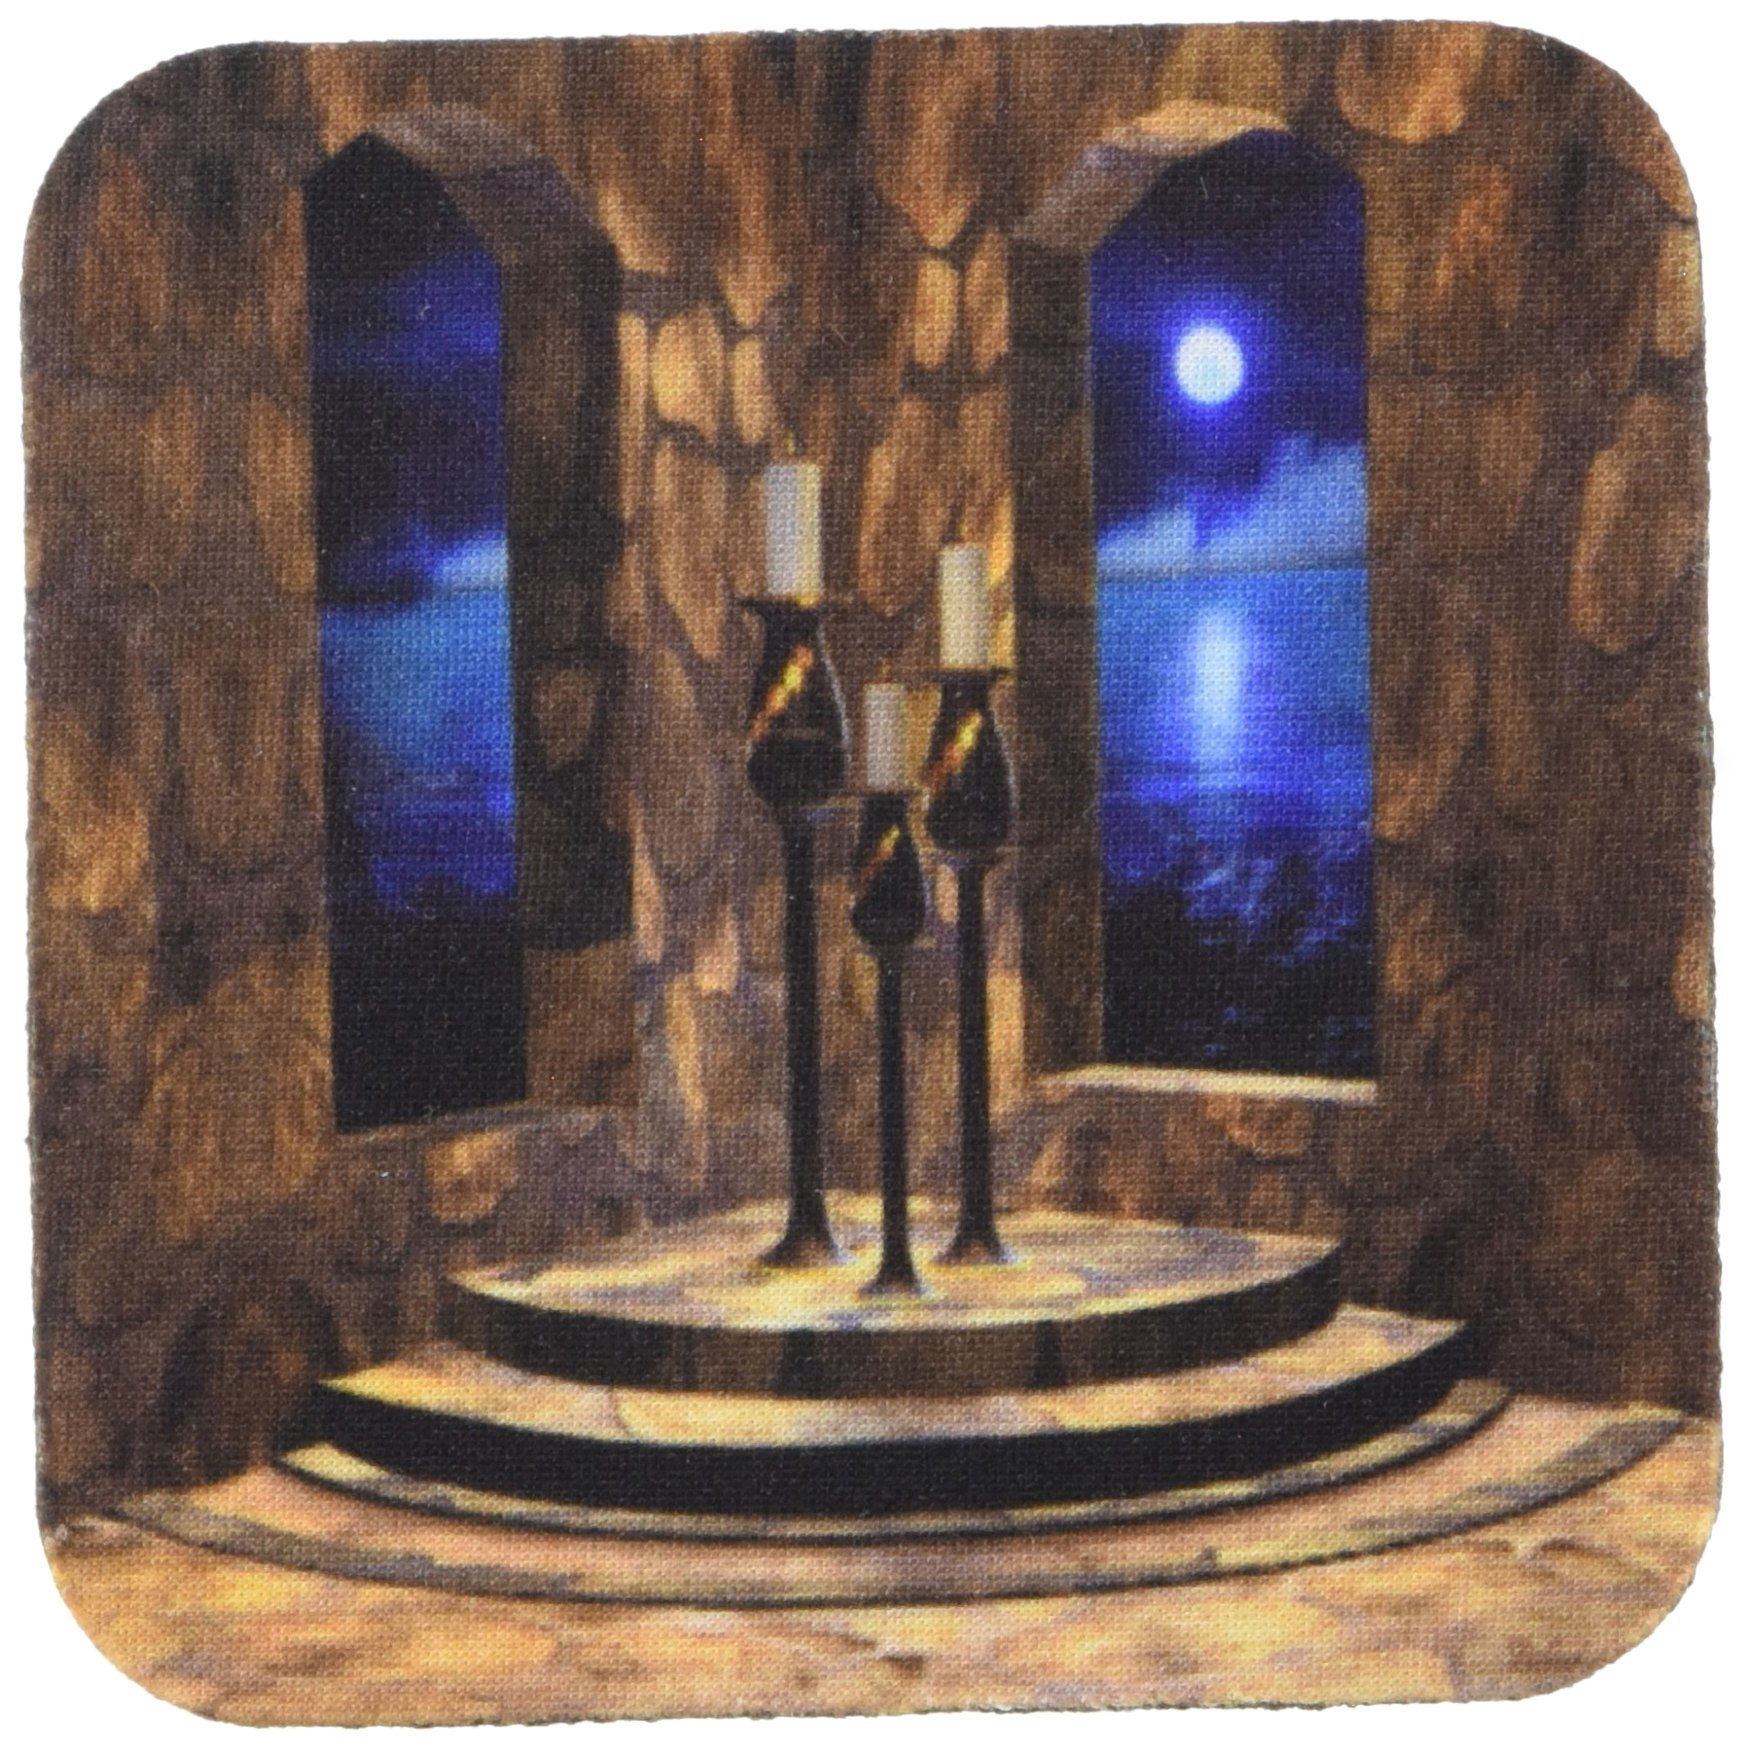 3dRose cst_11660_2 A Medieval Castle interior with Stone Walls, Arched Windows and a View of The Moonlit Sea Beyond Soft Coasters, Set of 8